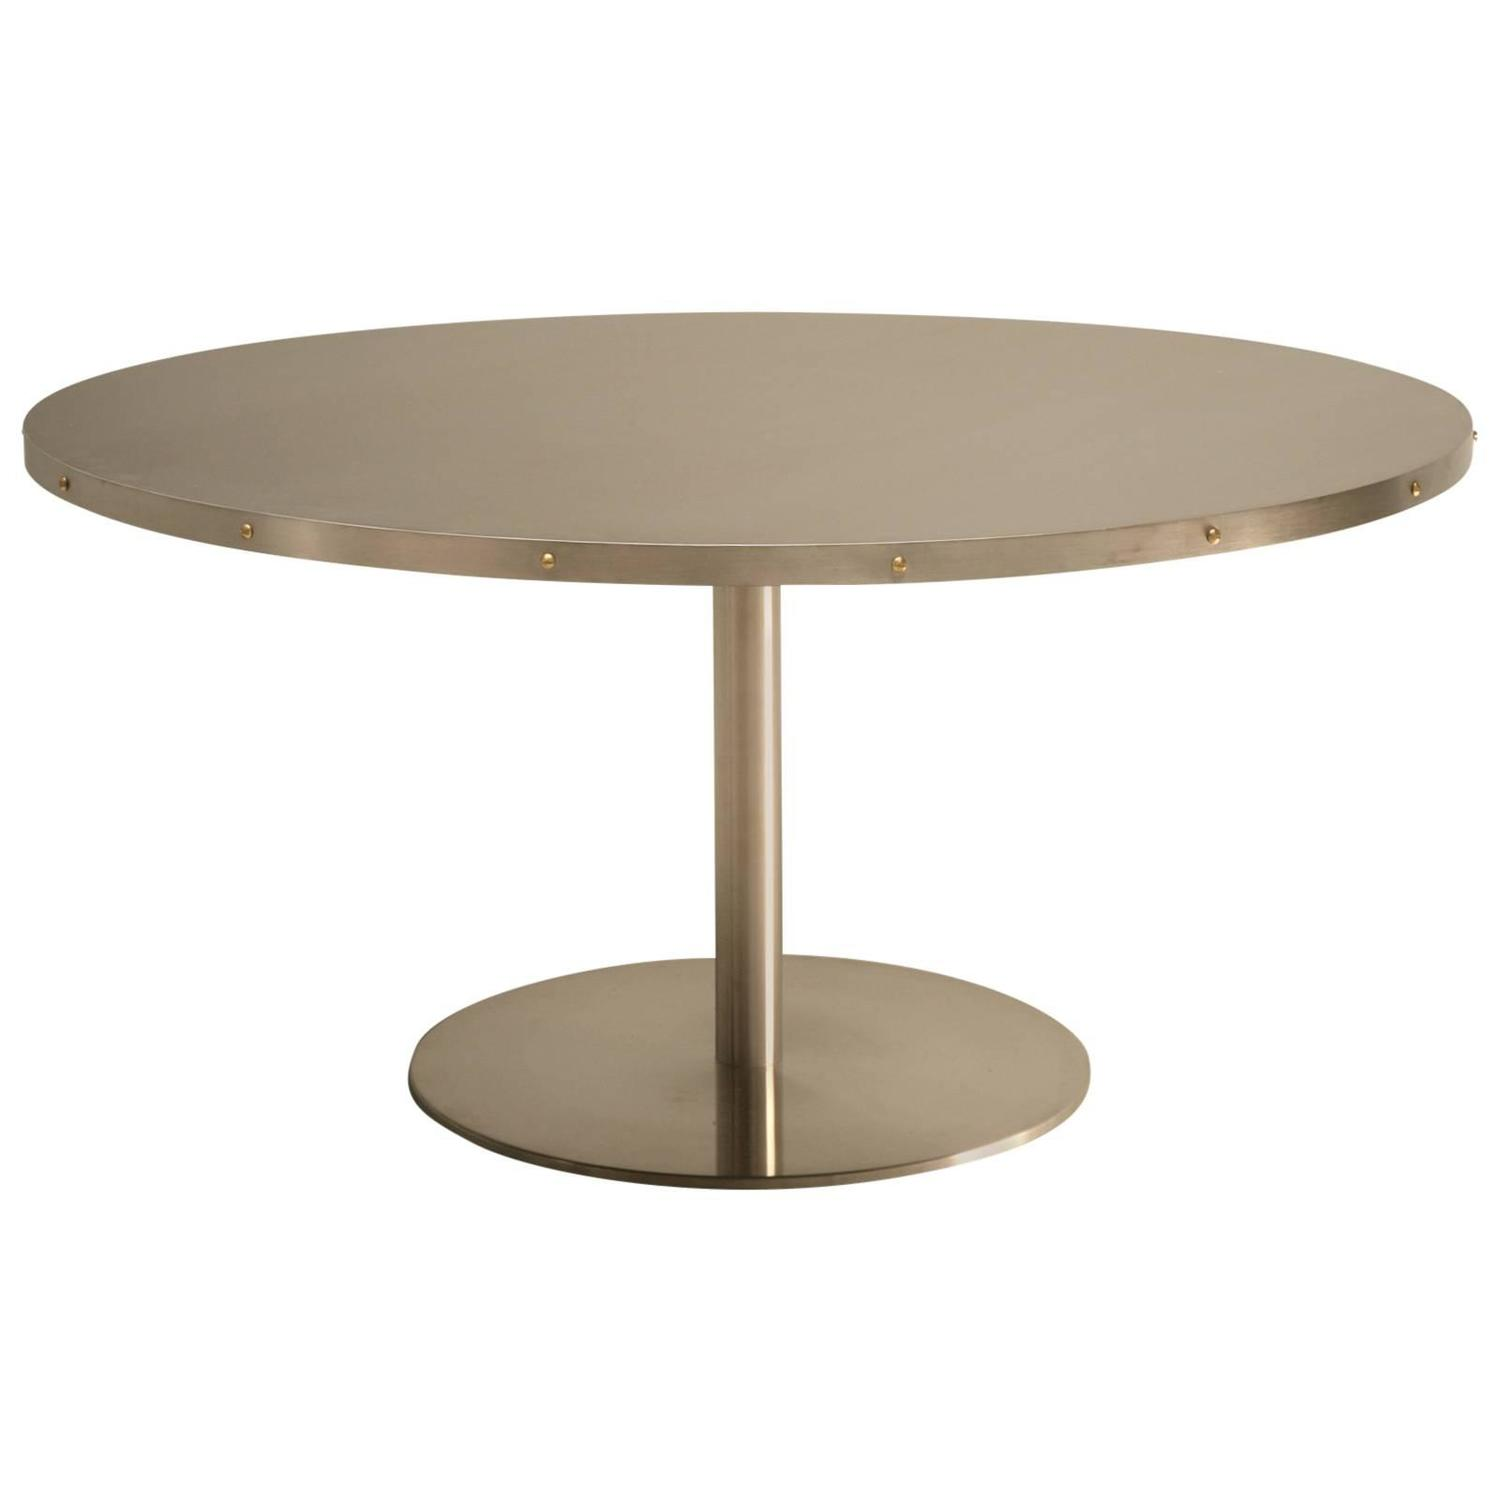 Custom 60quot Stainless Steel Dining Table at 1stdibs : 1069506z from www.1stdibs.com size 1500 x 1500 jpeg 31kB